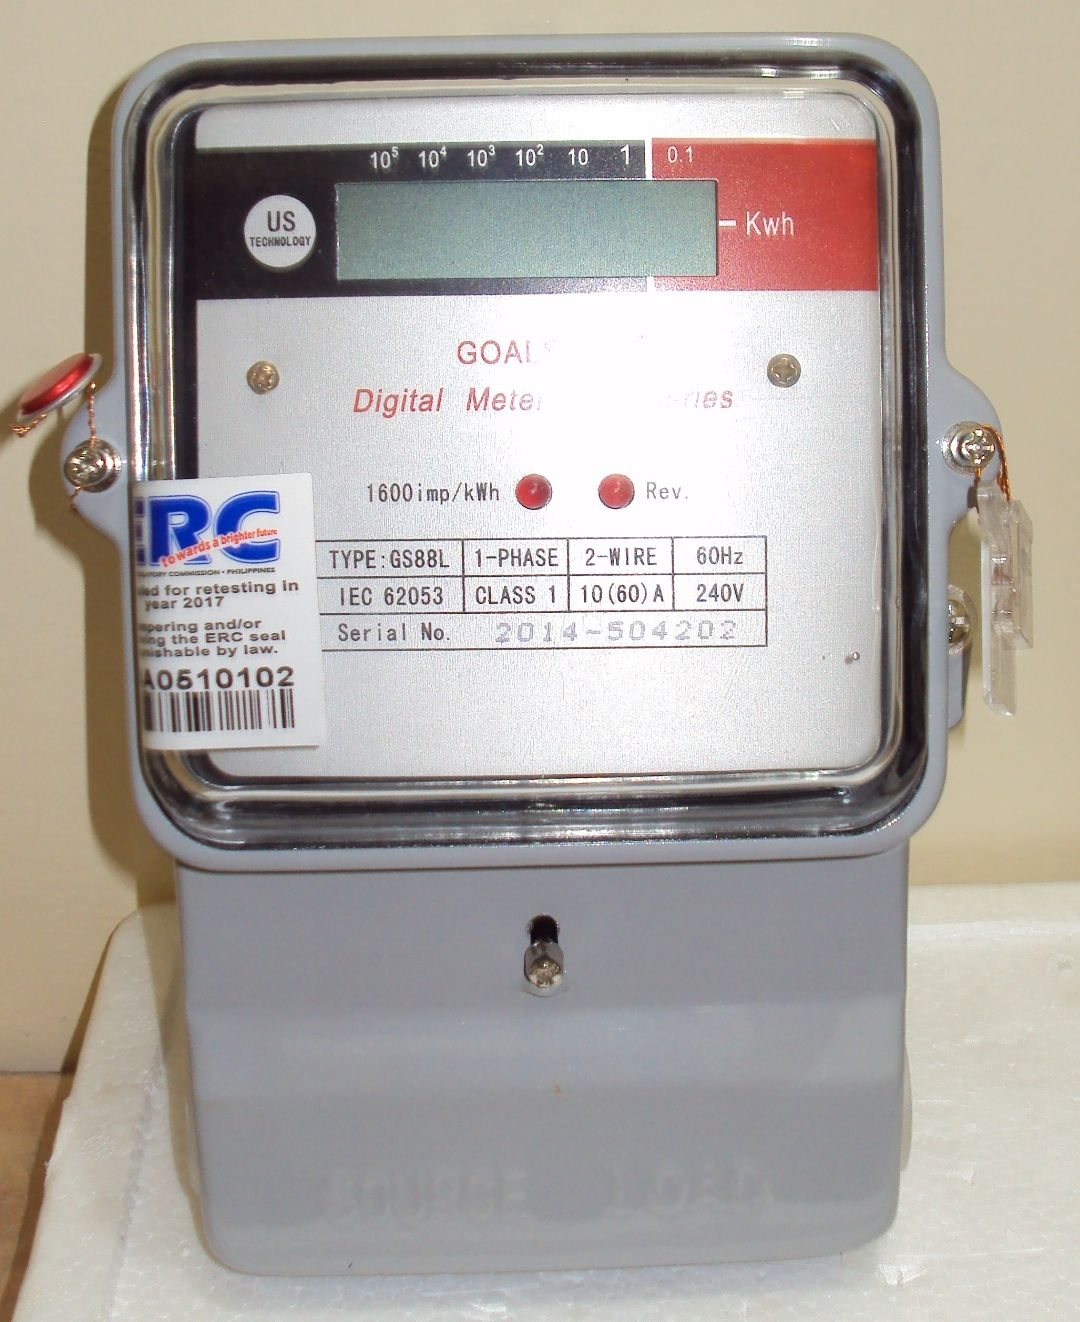 Goalstar Digital Electric Meter Gs88l Lcd Display1 Phase 2wire How To Wire Single Kwh Electrical Technology 60hz Class 1 1060 Ampere 240volts 1600 Imp Us 100 Calibrated And